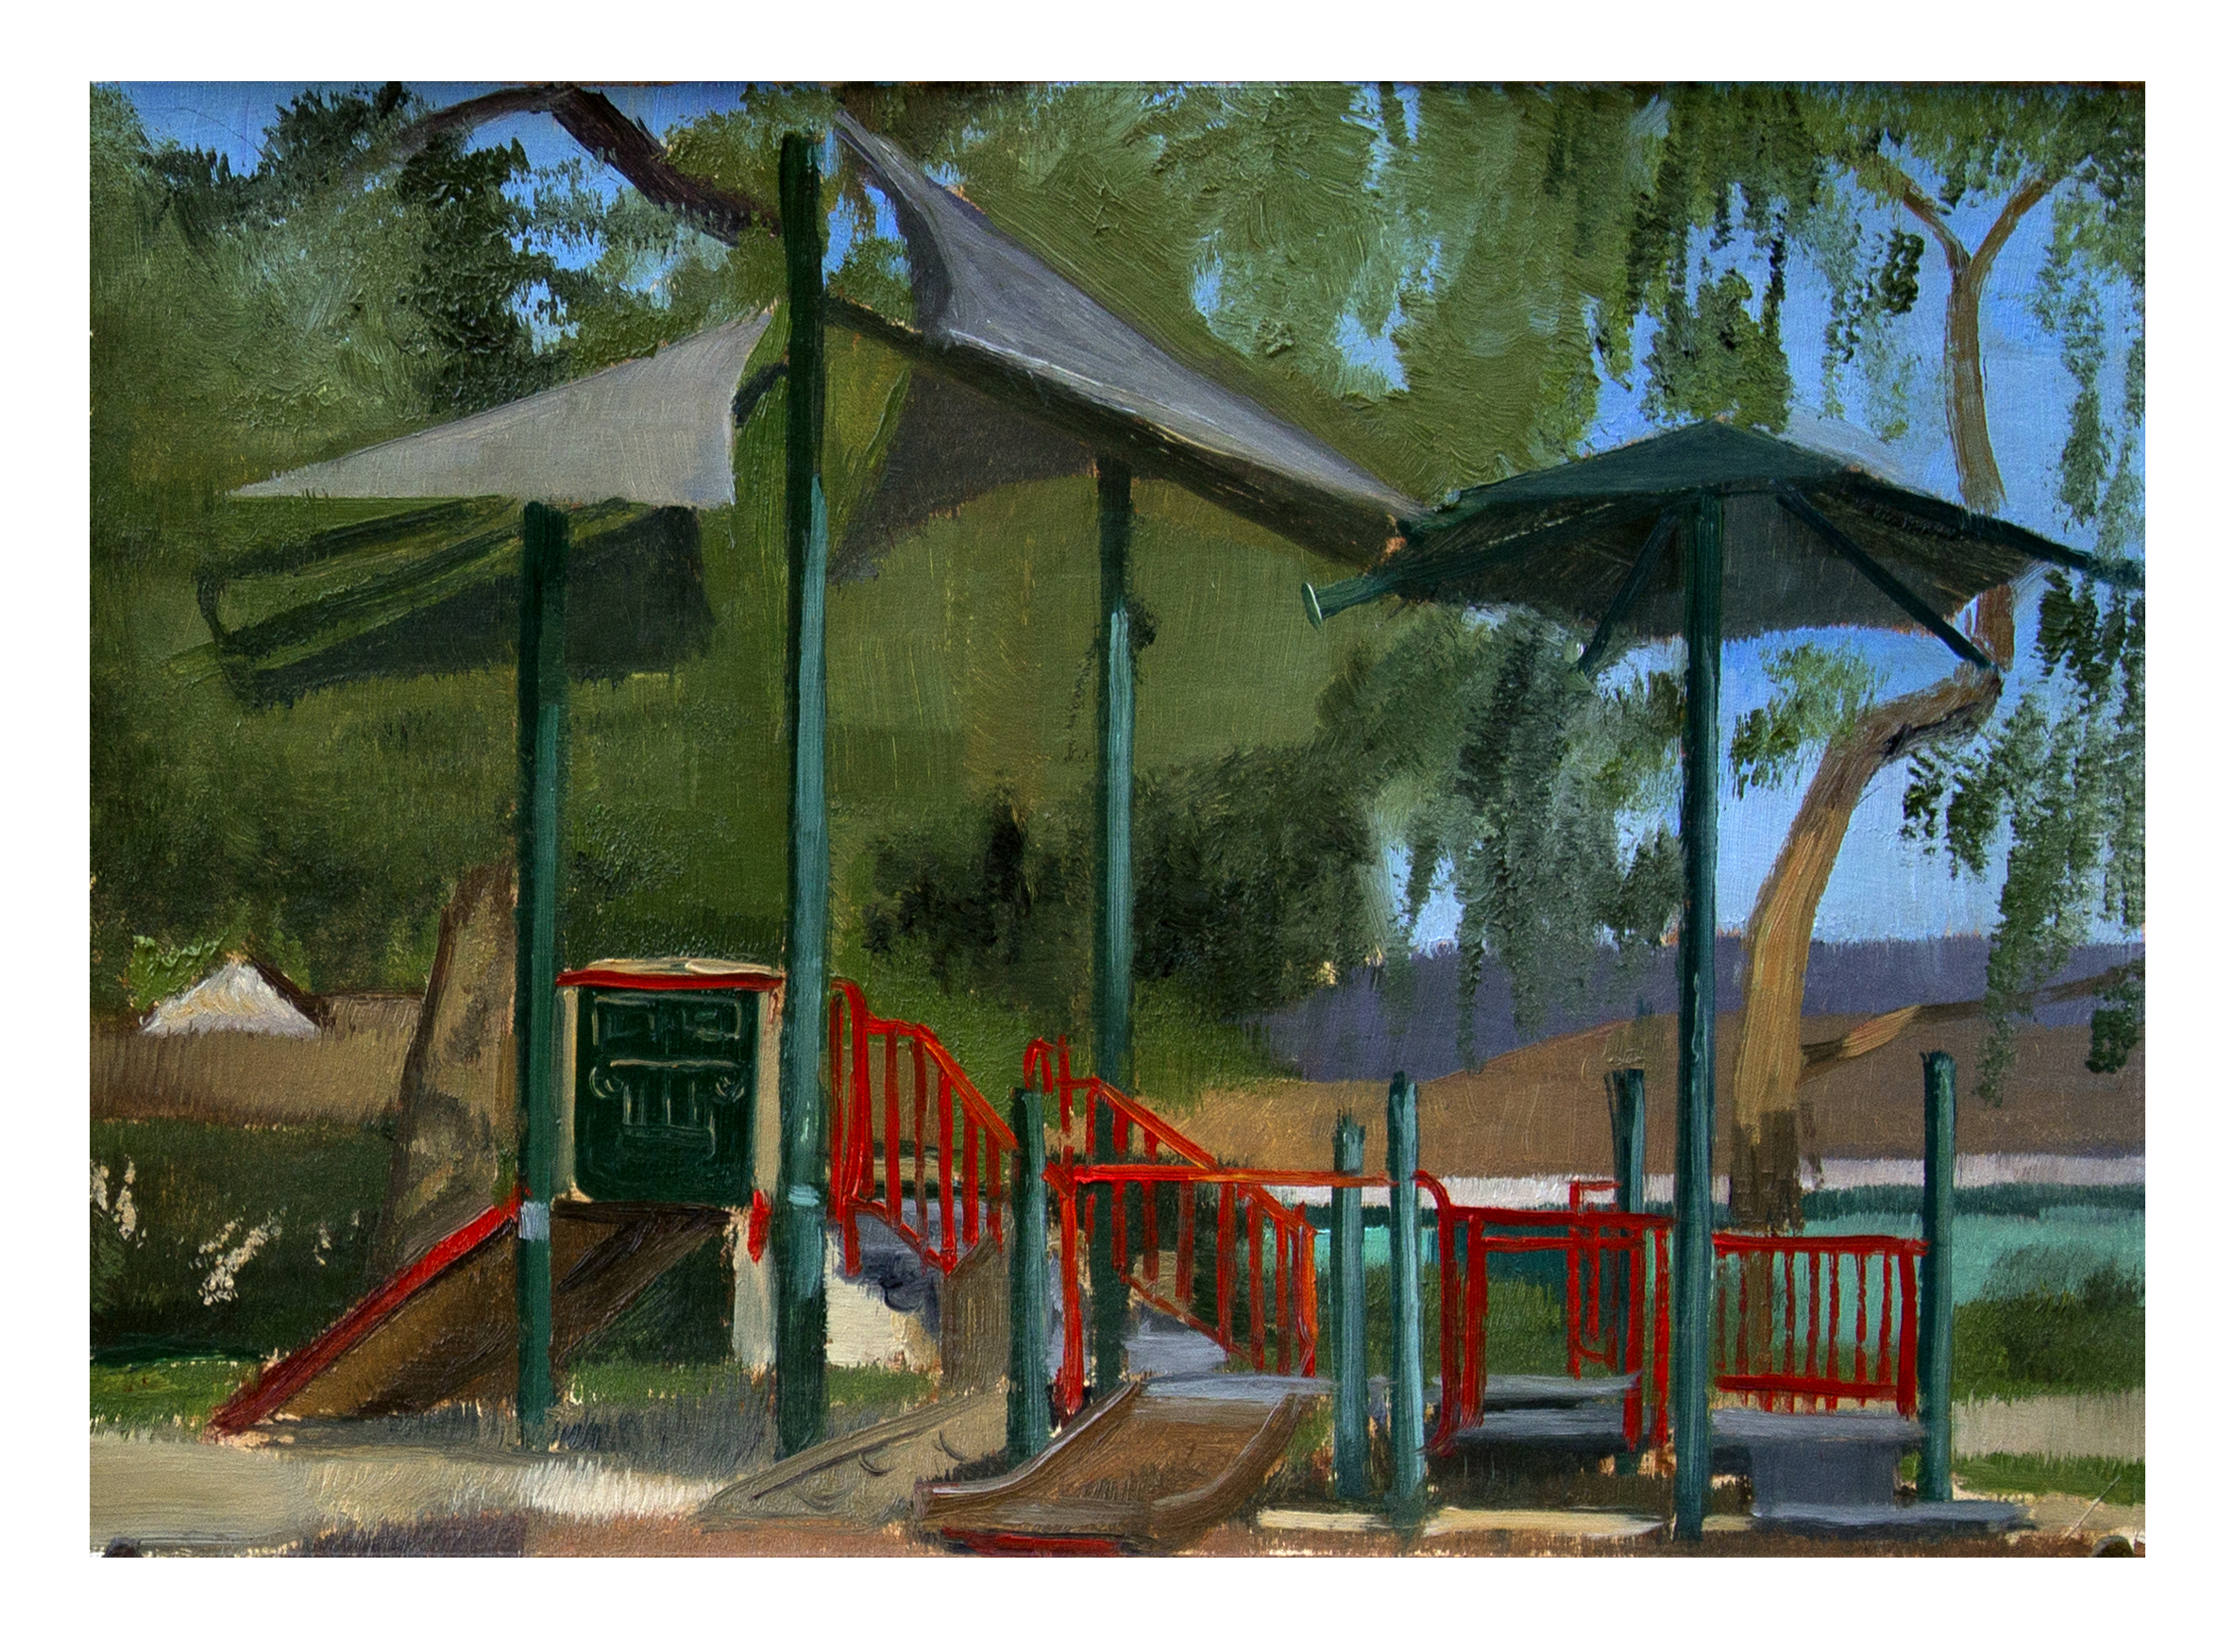 Mountain View Park Playground, James Wu